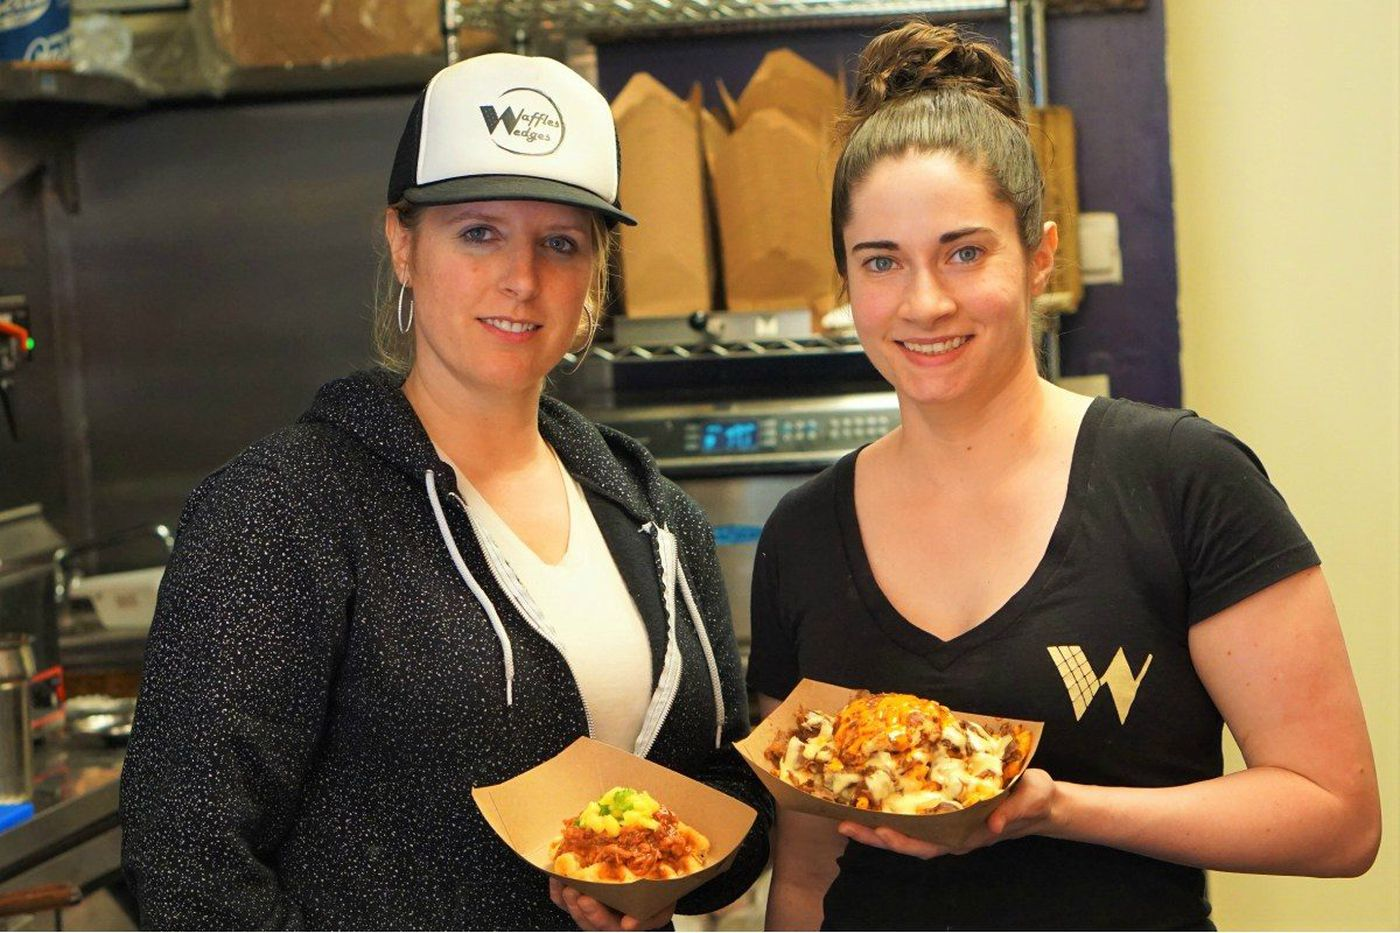 Waffles come to Reading Terminal Market